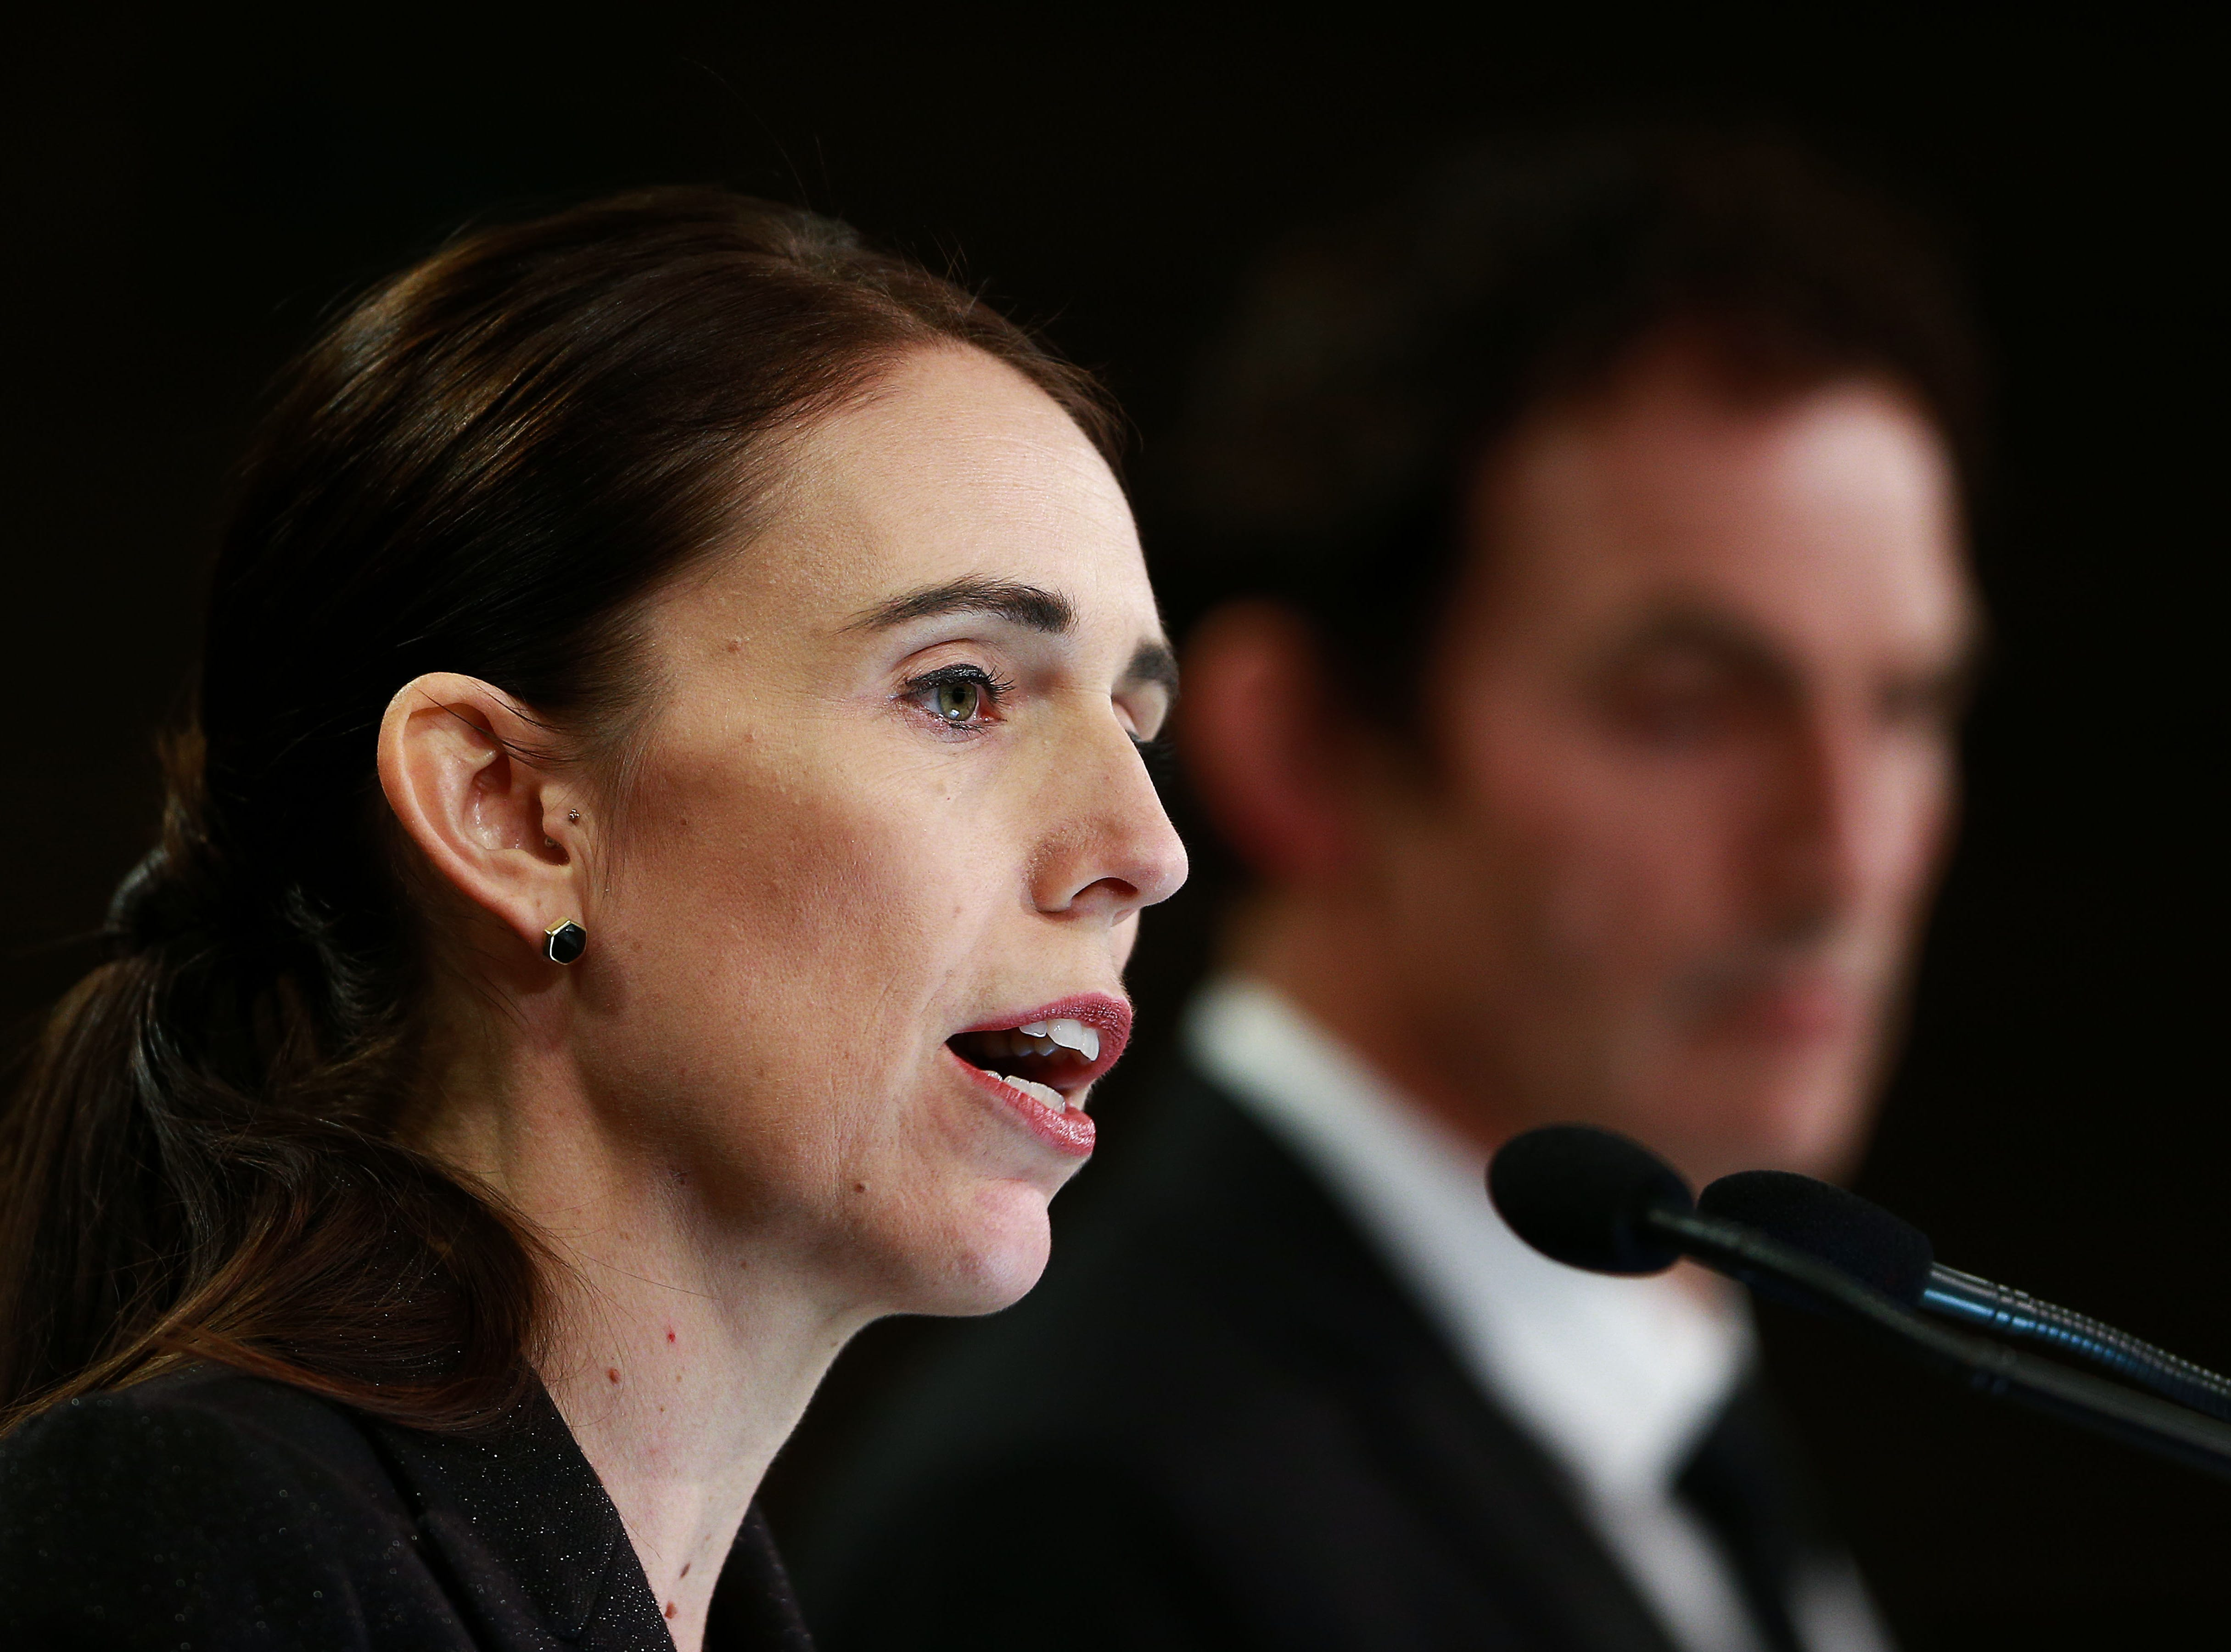 Prime Minister Jacinda Ardern and Minister of Police Stuart Nash speak to media during a press conference at Parliament on March 21, 2019 in Wellington, New Zealand. Prime Minister Jacinda Ardern announced today that New Zealand will ban all military style semi-automatics and assault rifles. The new law follows attacks in which 50 people were killed, and dozens injured after a gunman opened fire on two mosques in Christchurch on Friday, 15 March. The accused attacker, 28-year-old Australian, Brenton Tarrant, has been charged with murder and remanded in custody until April 5. The attack is the worst mass shooting in New Zealand's history.